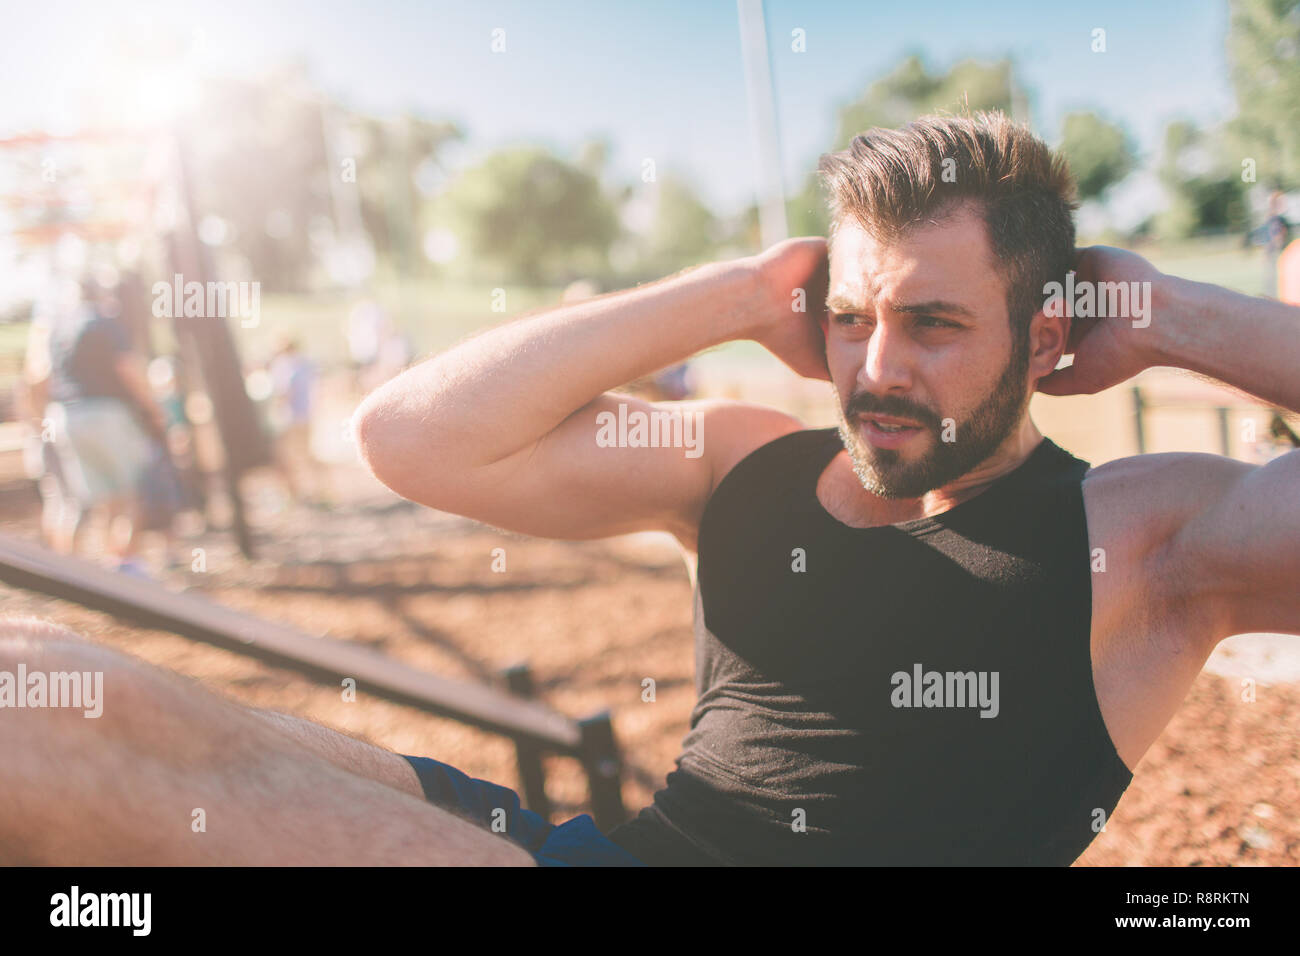 2f086b7c6b19 Muscular man exercising doing sit up exercise. Athlete with six pack